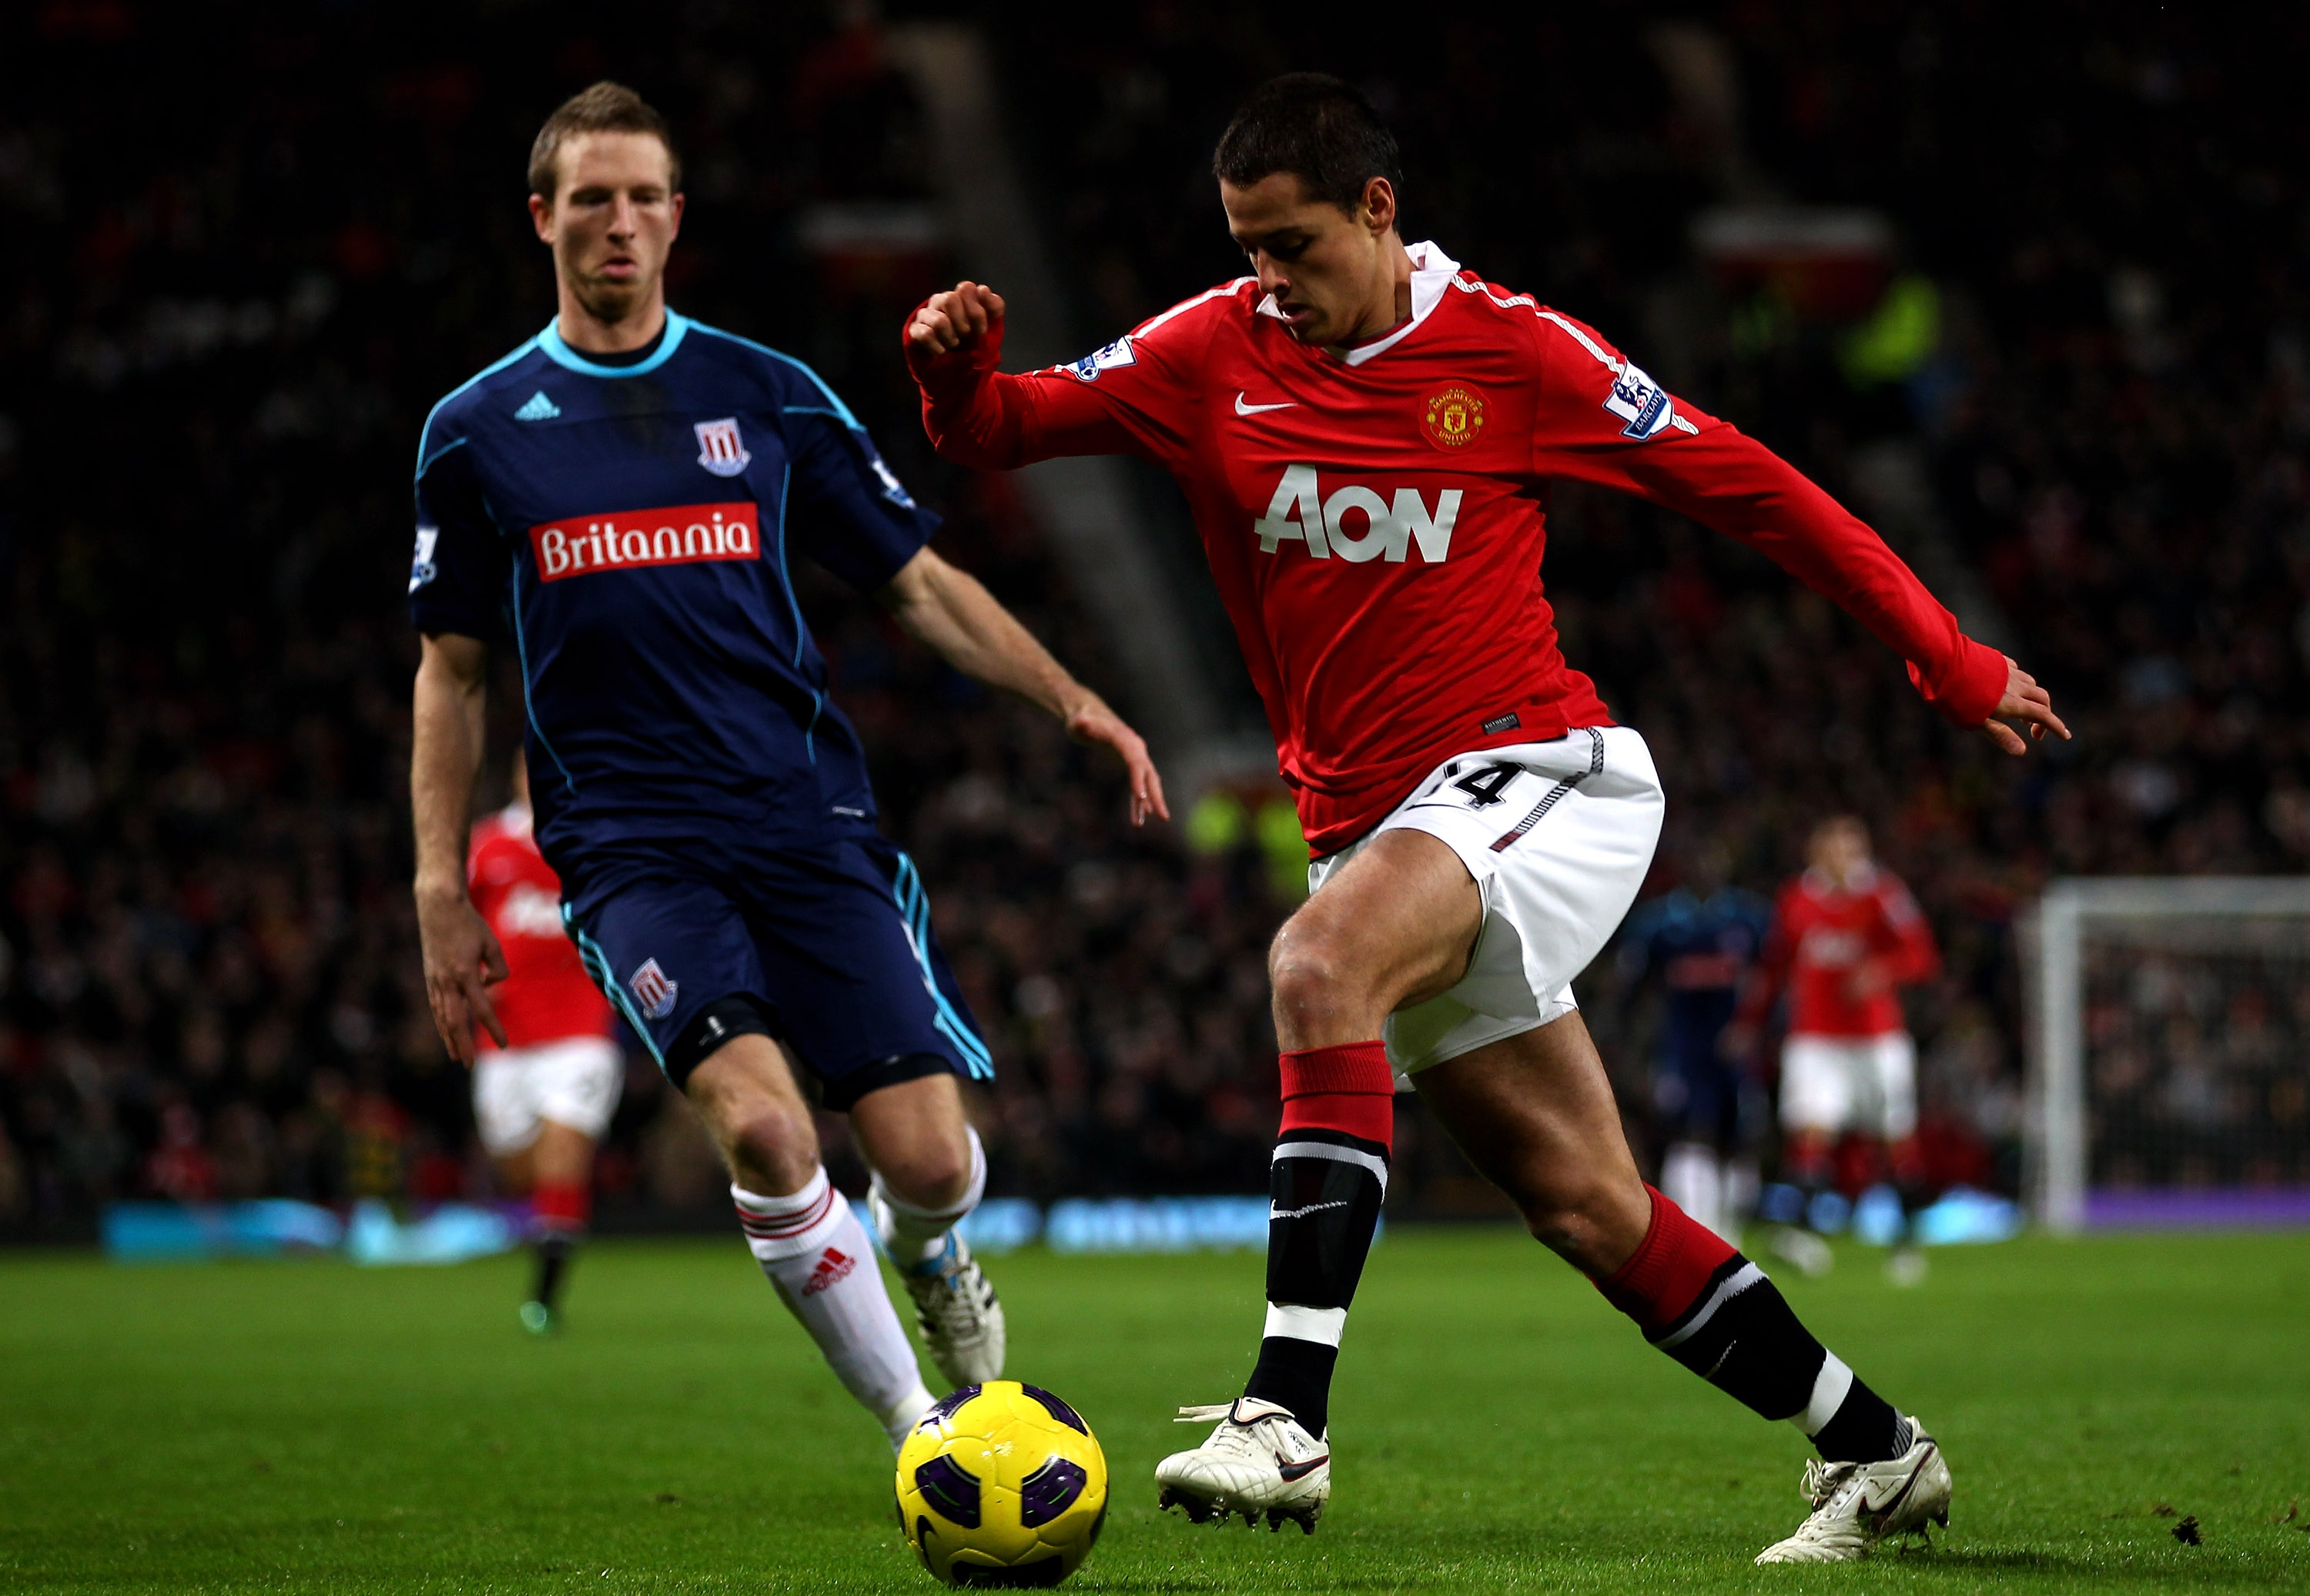 MANCHESTER, ENGLAND - JANUARY 04:  Javier Hernandez of Manchester United competes with Danny Collins of Stoke City during the Barclays Premier League match between Manchester United and Stoke City at Old Trafford on January 4, 2011 in Manchester, England.